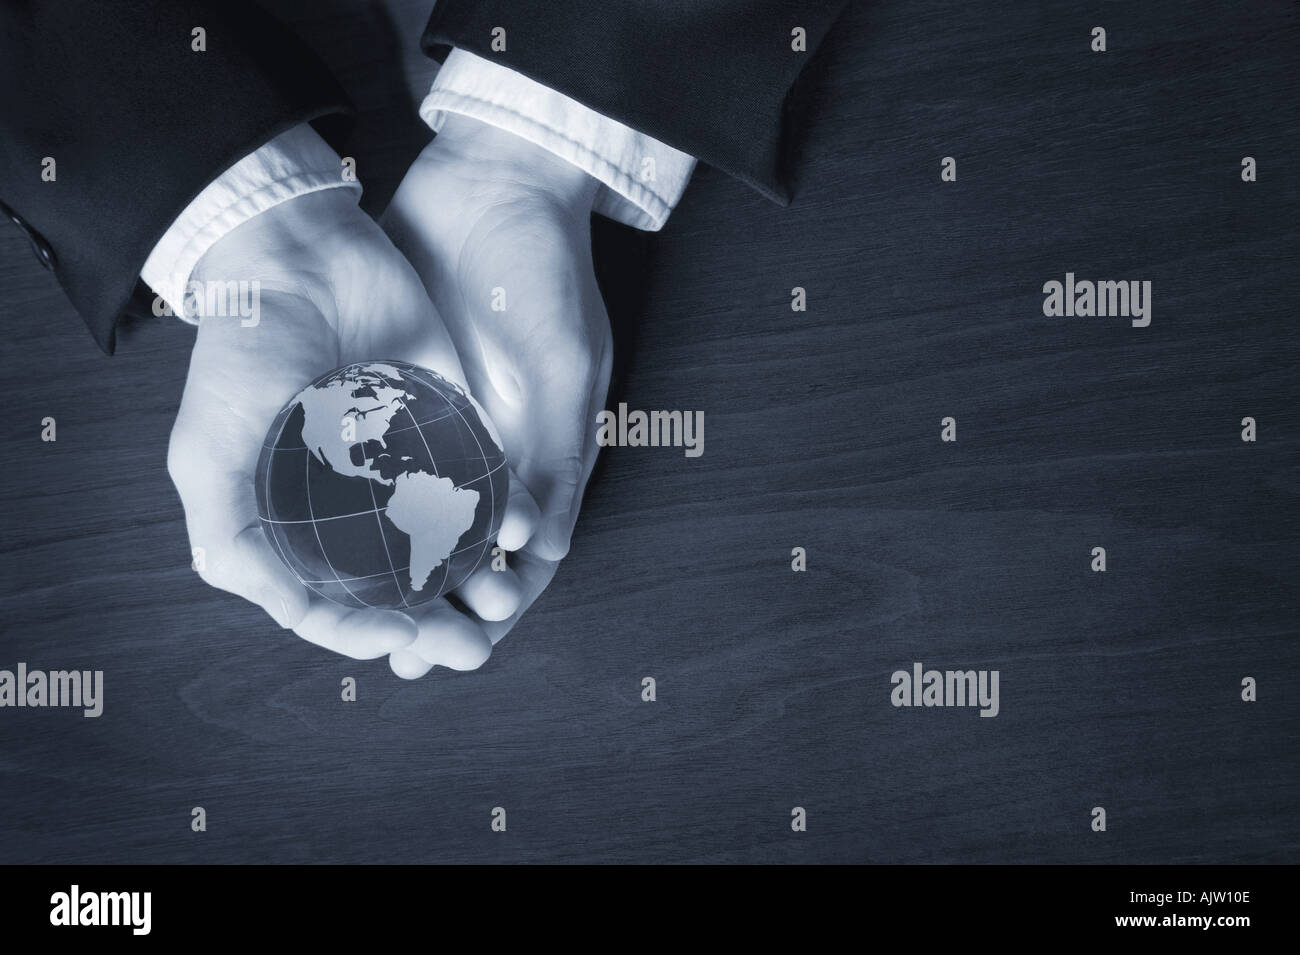 World in his hands - Stock Image